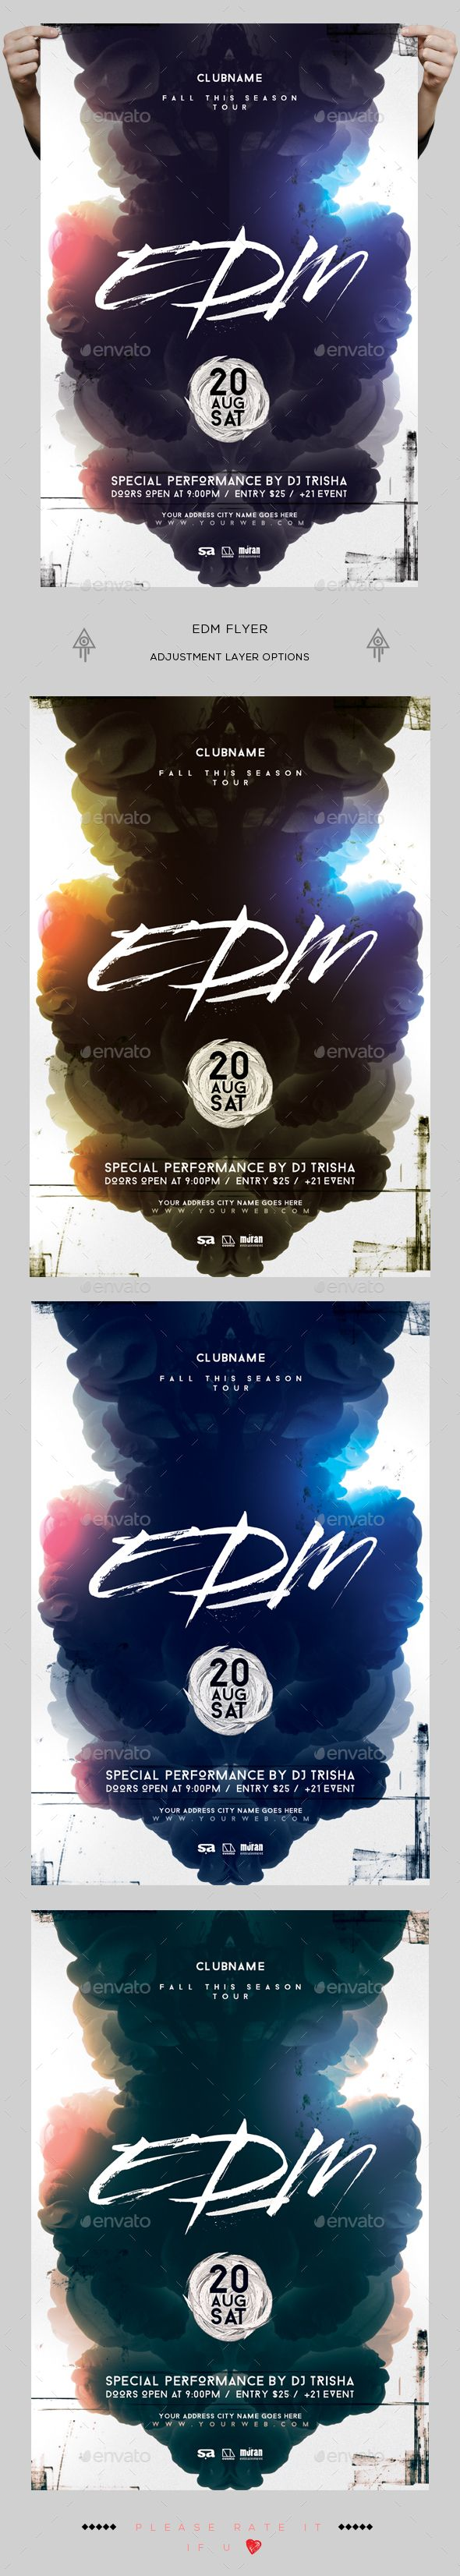 EDM Flyer — Photoshop PSD #nightclub #event • Download ➝ https://graphicriver.net/item/edm-flyer/18956298?ref=pxcr